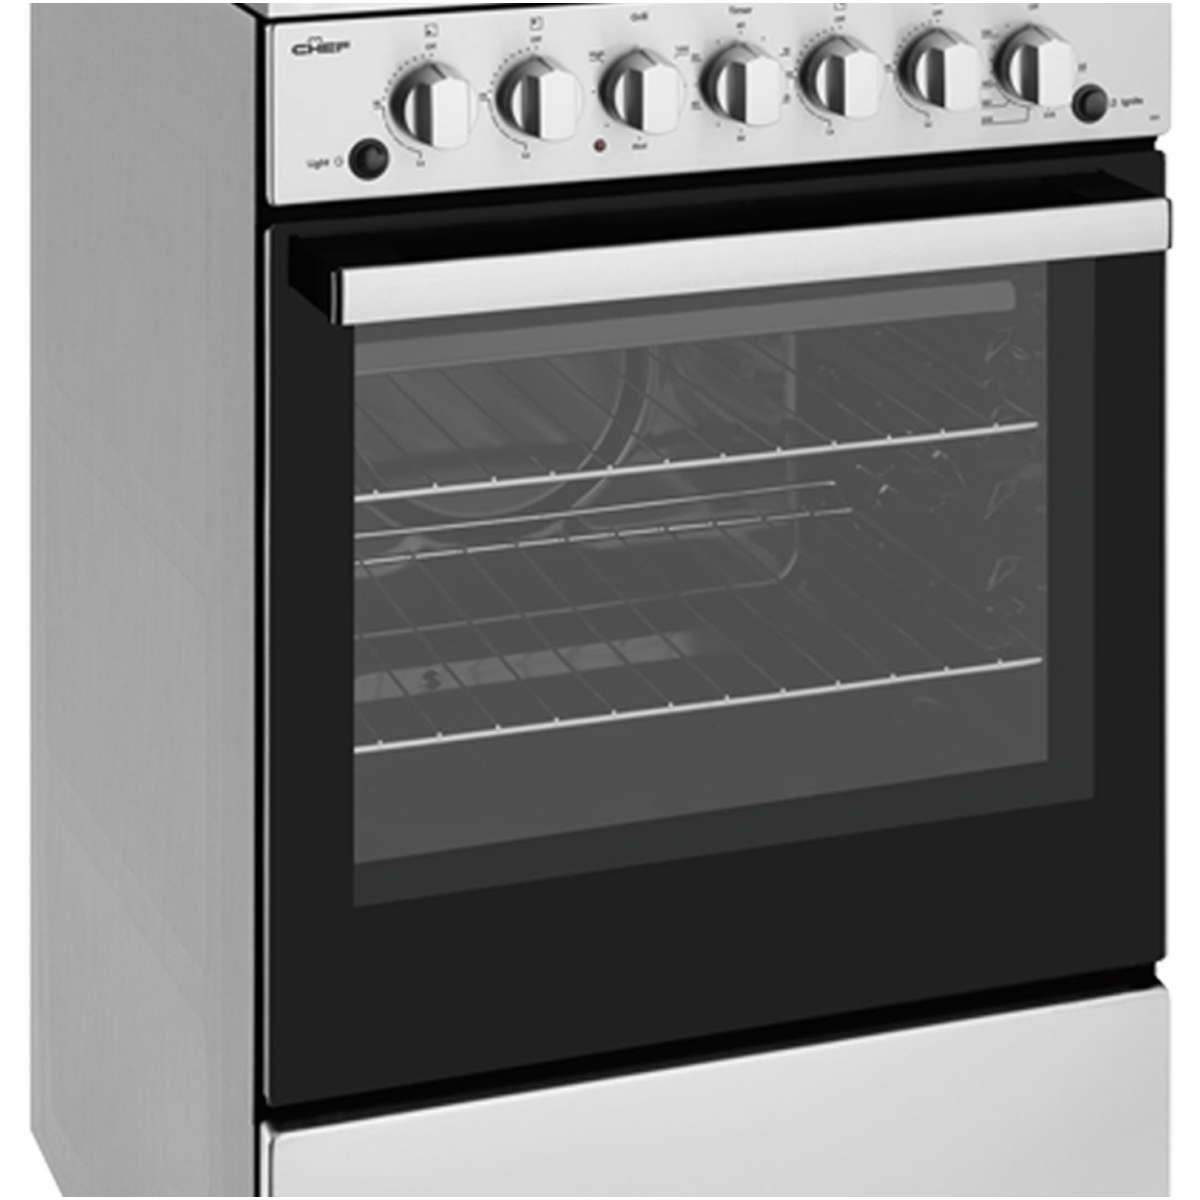 Chef CFG504SBNG 54cm Freestanding Natural Gas Oven/Stove 86465